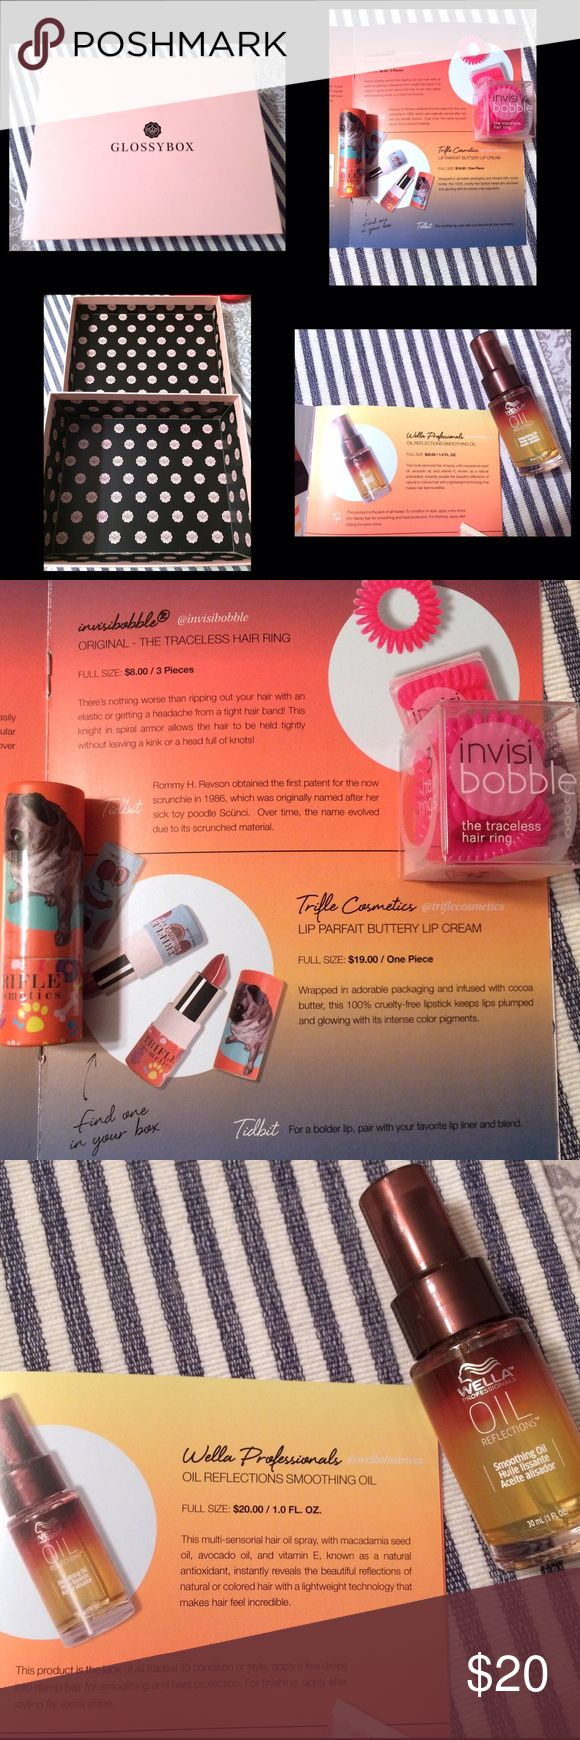 Glossybox UK Beauty Bundle • Gift Box Glossybox UK edition gift box and beauty bundle. Pink gift box. Invisibobble traceless hair rings. Trifle cosmetics lip color. Wella professionals smoothing hair oil spray. Bundle to receive discount and pay one shipping fee! Sephora Bags Cosmetic Bags & Cases